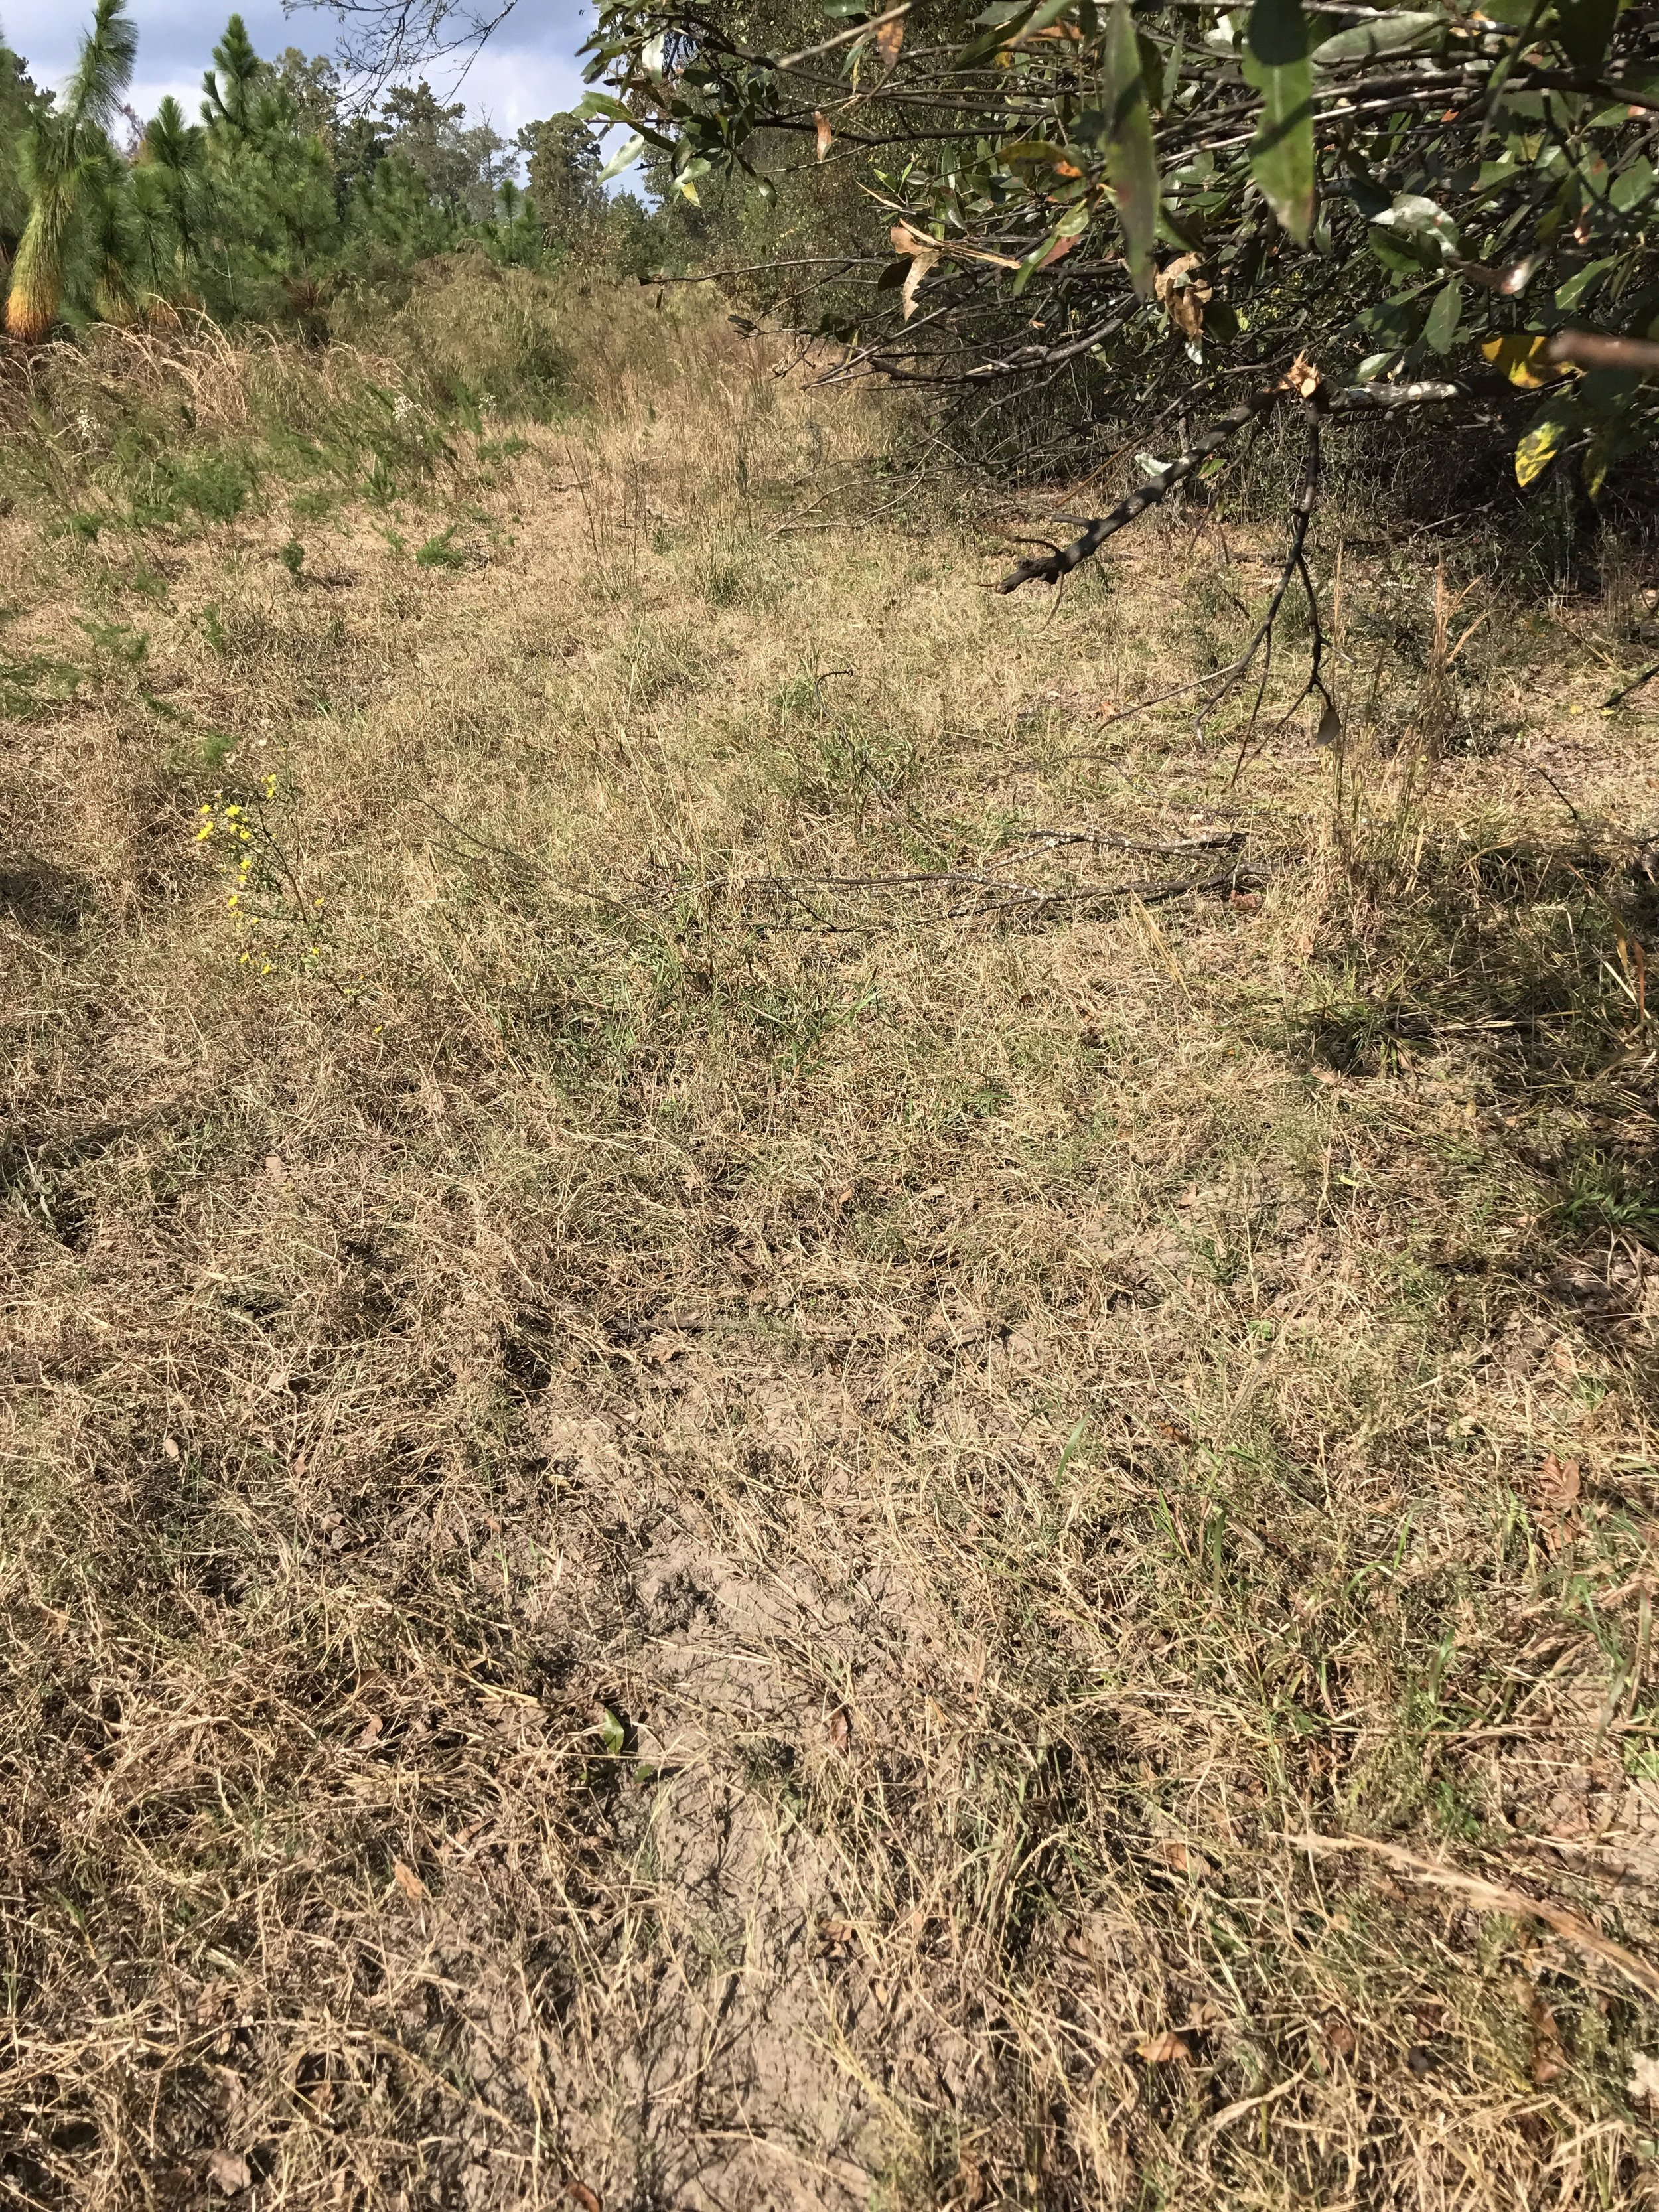 A possible community scrape on some Alabama public land. A close look shows the ground has been worked and sevral licking branches broken off after lots of use.